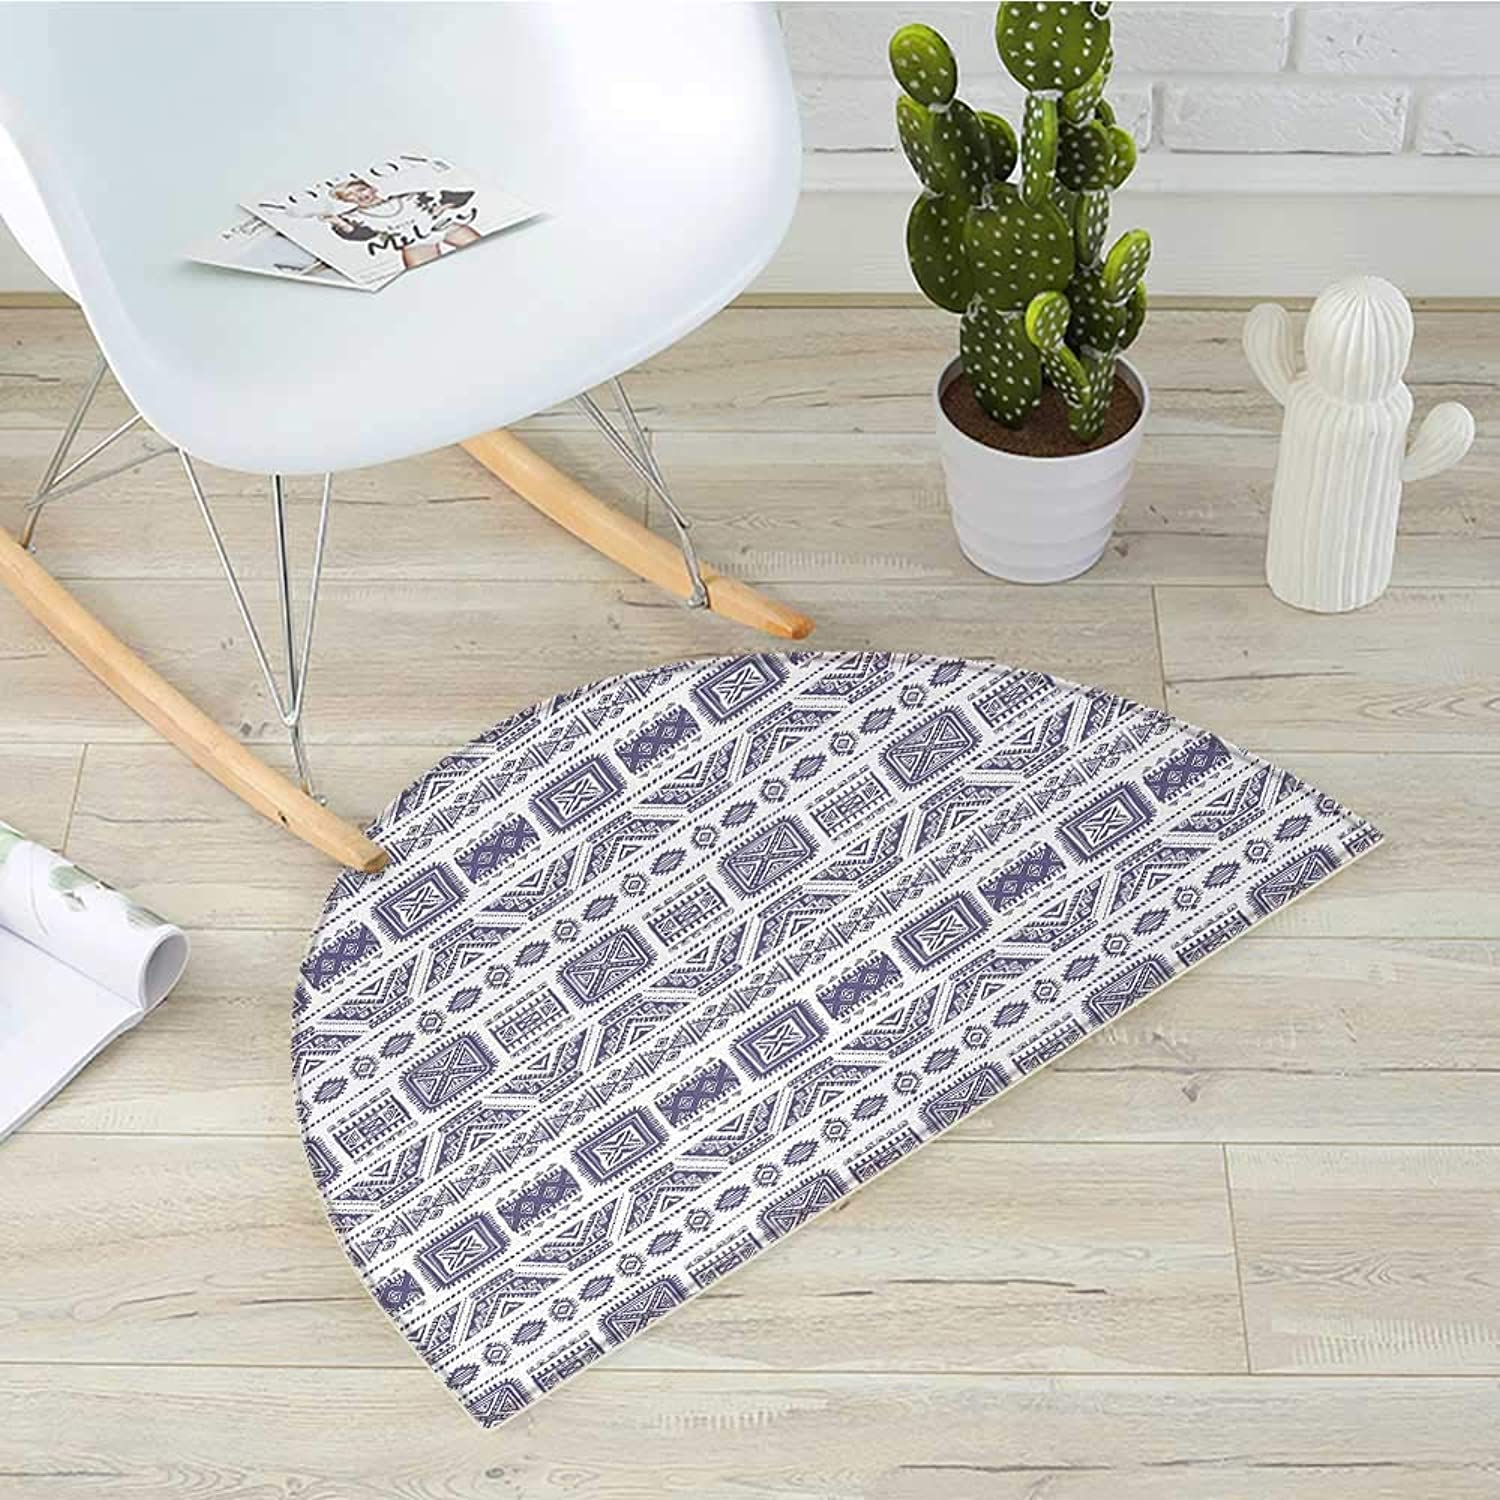 Tribal Semicircular CushionMexican Aztec Pattern with Geometric Forms Vintage Ethnic Boho Artwork Design Print Entry Door Mat H 19.7  xD 31.5  Mauve White